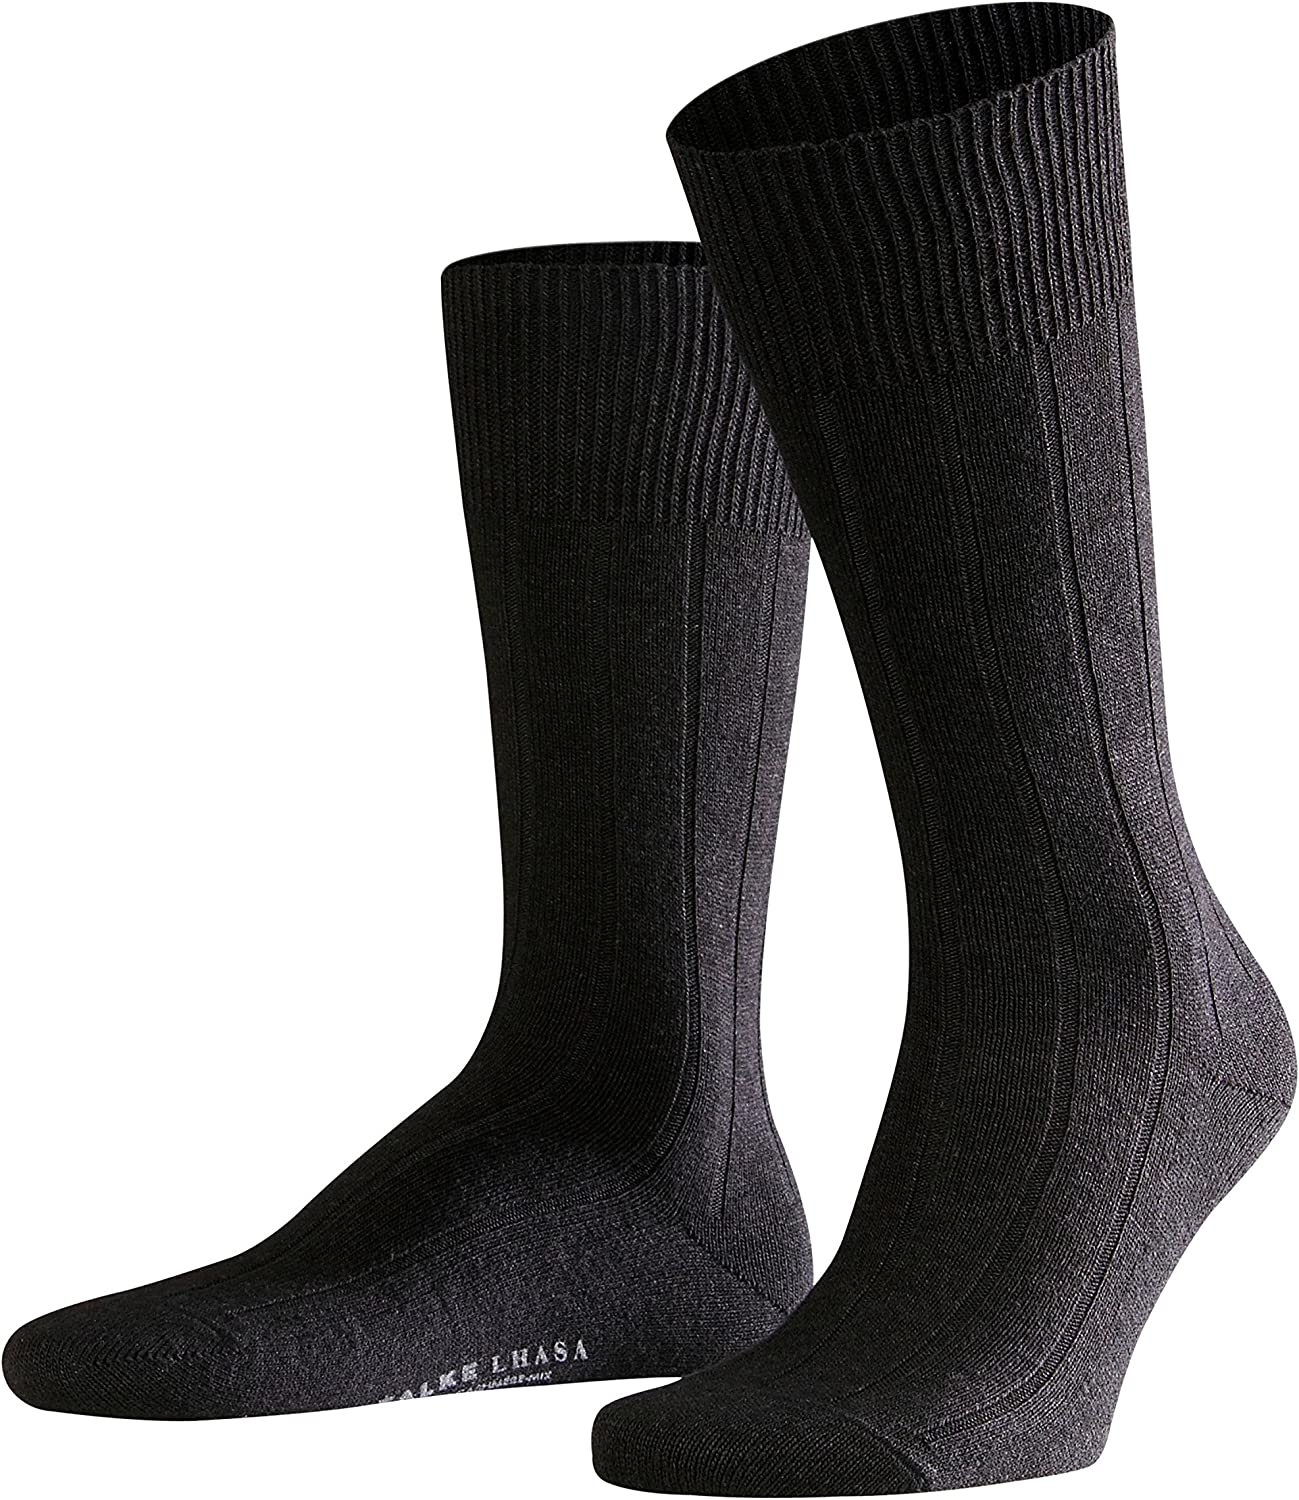 FALKE Mens Lhasa Rib Casual Sock - Wool/Cashmere Blend, In Black, Grey or Navy Blue, US sizes 6.5 to 15, 1 Pair